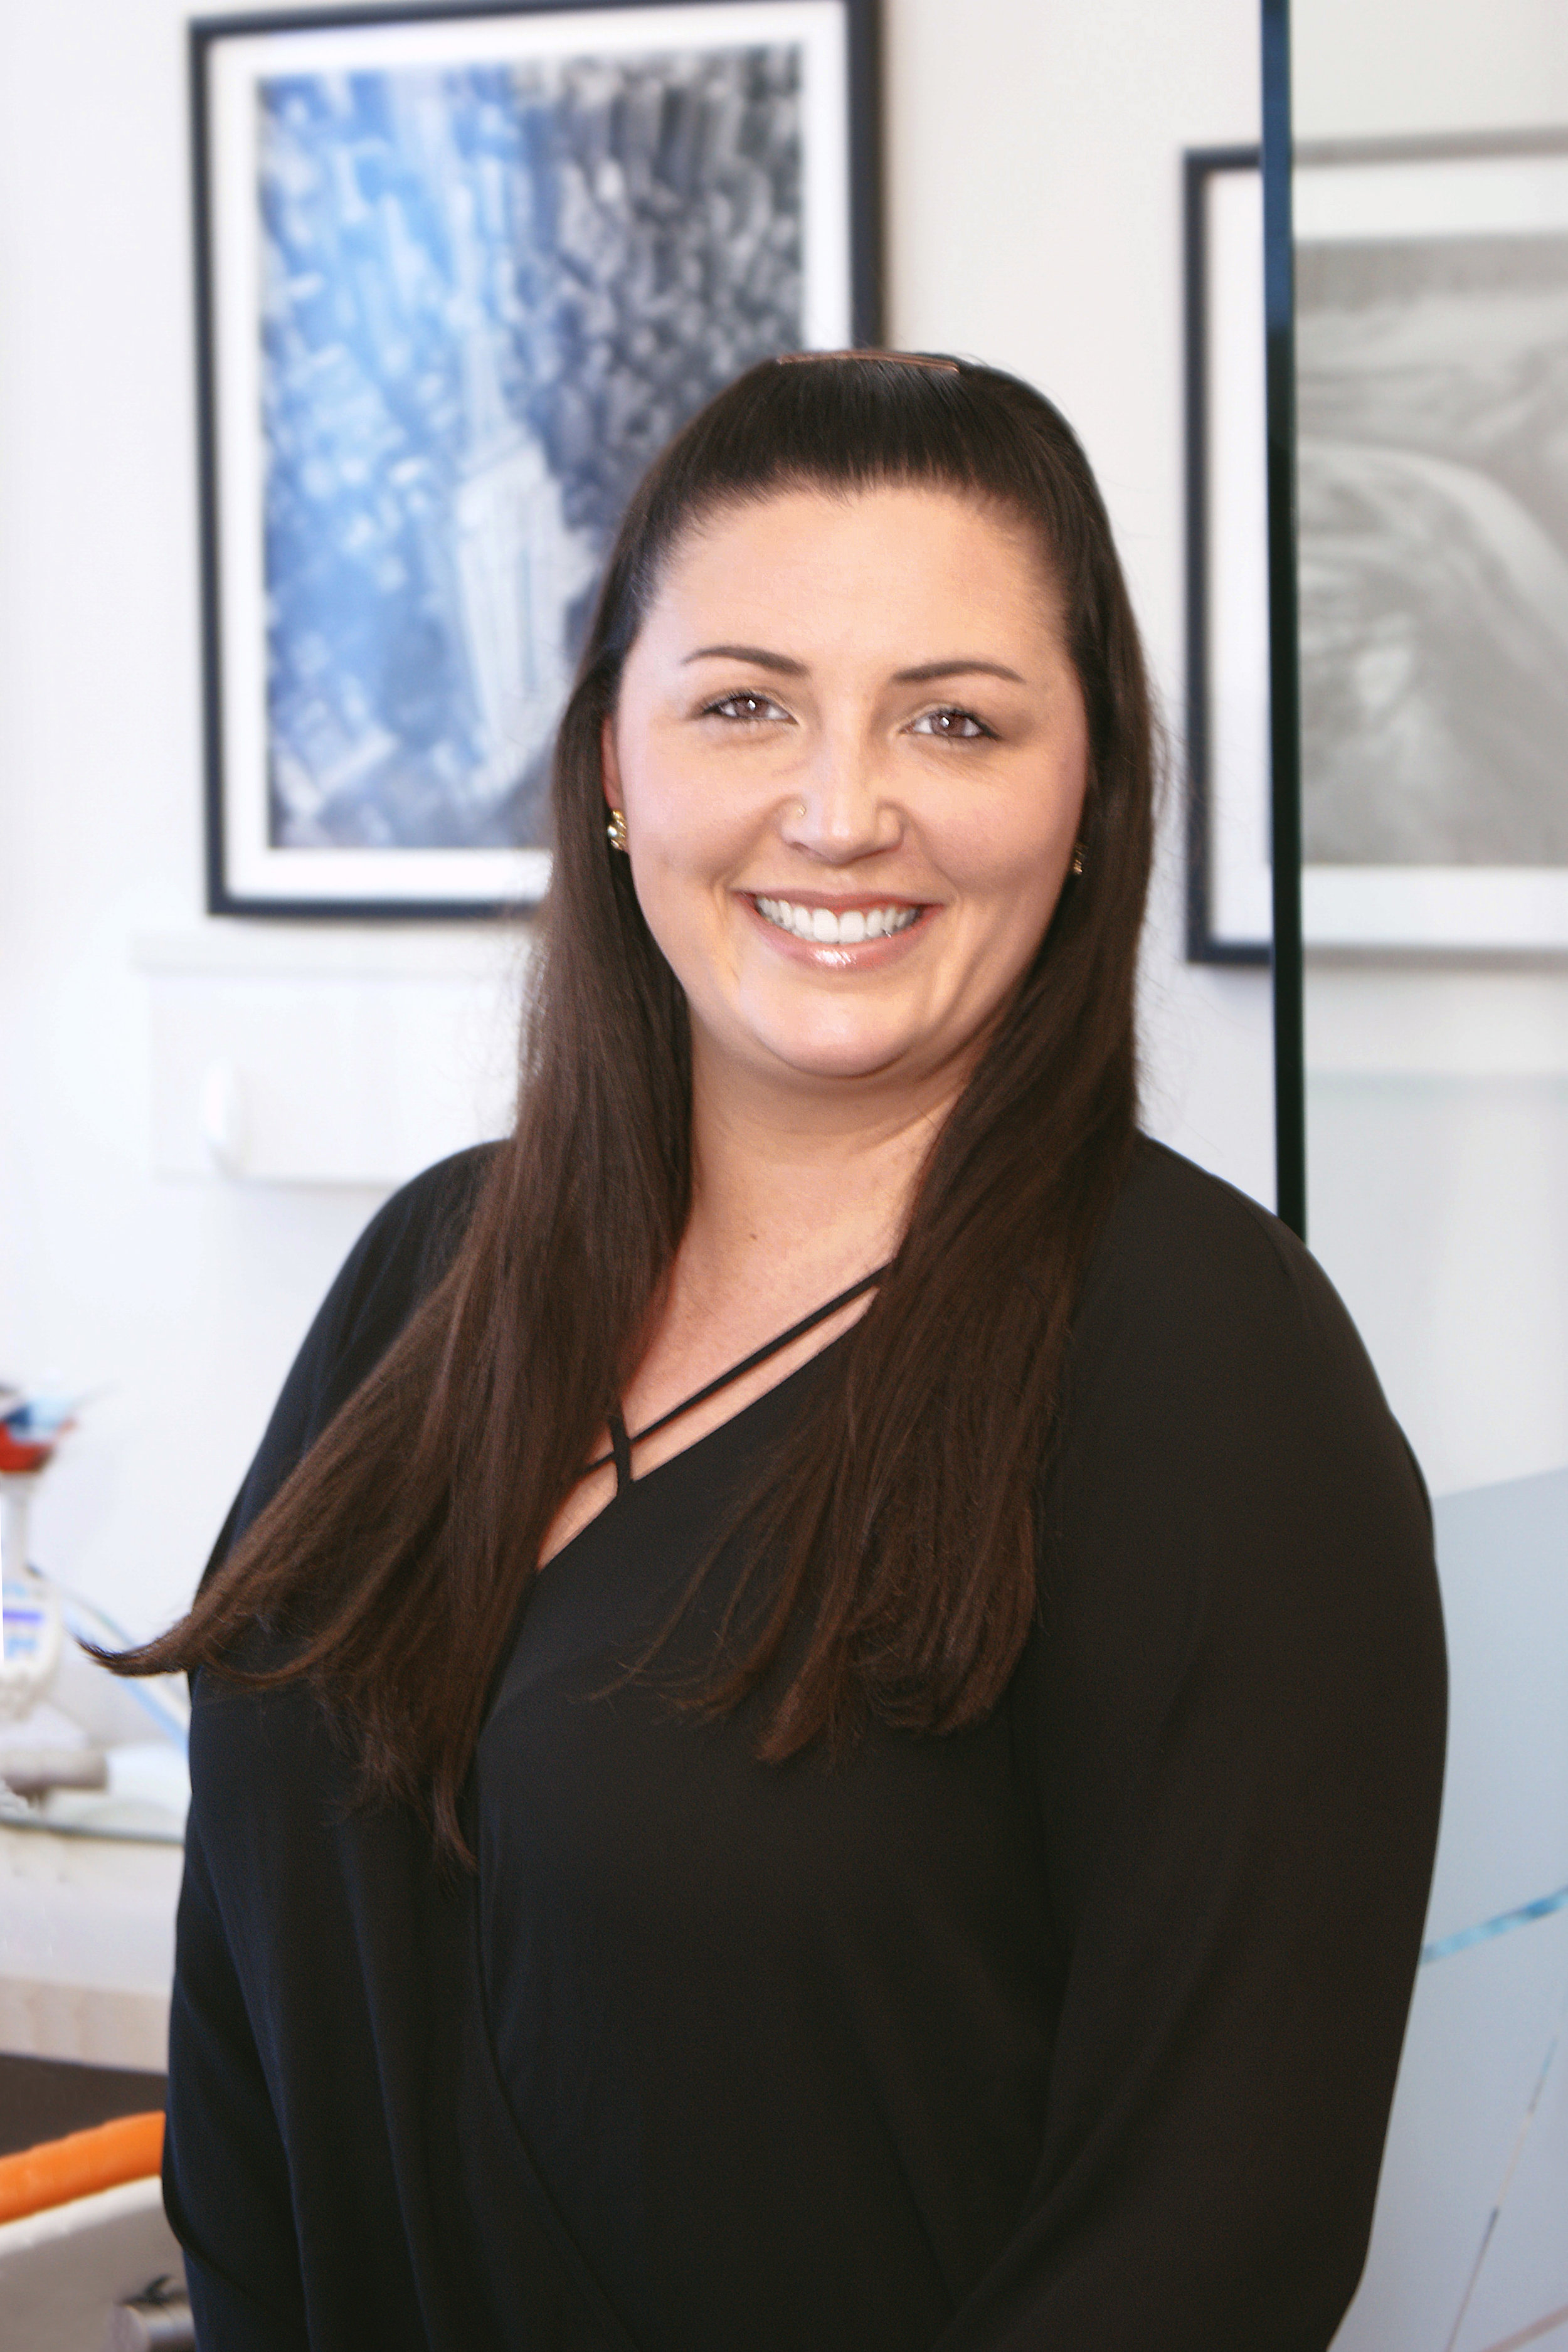 BOBBIE CURRAN - Office Manager